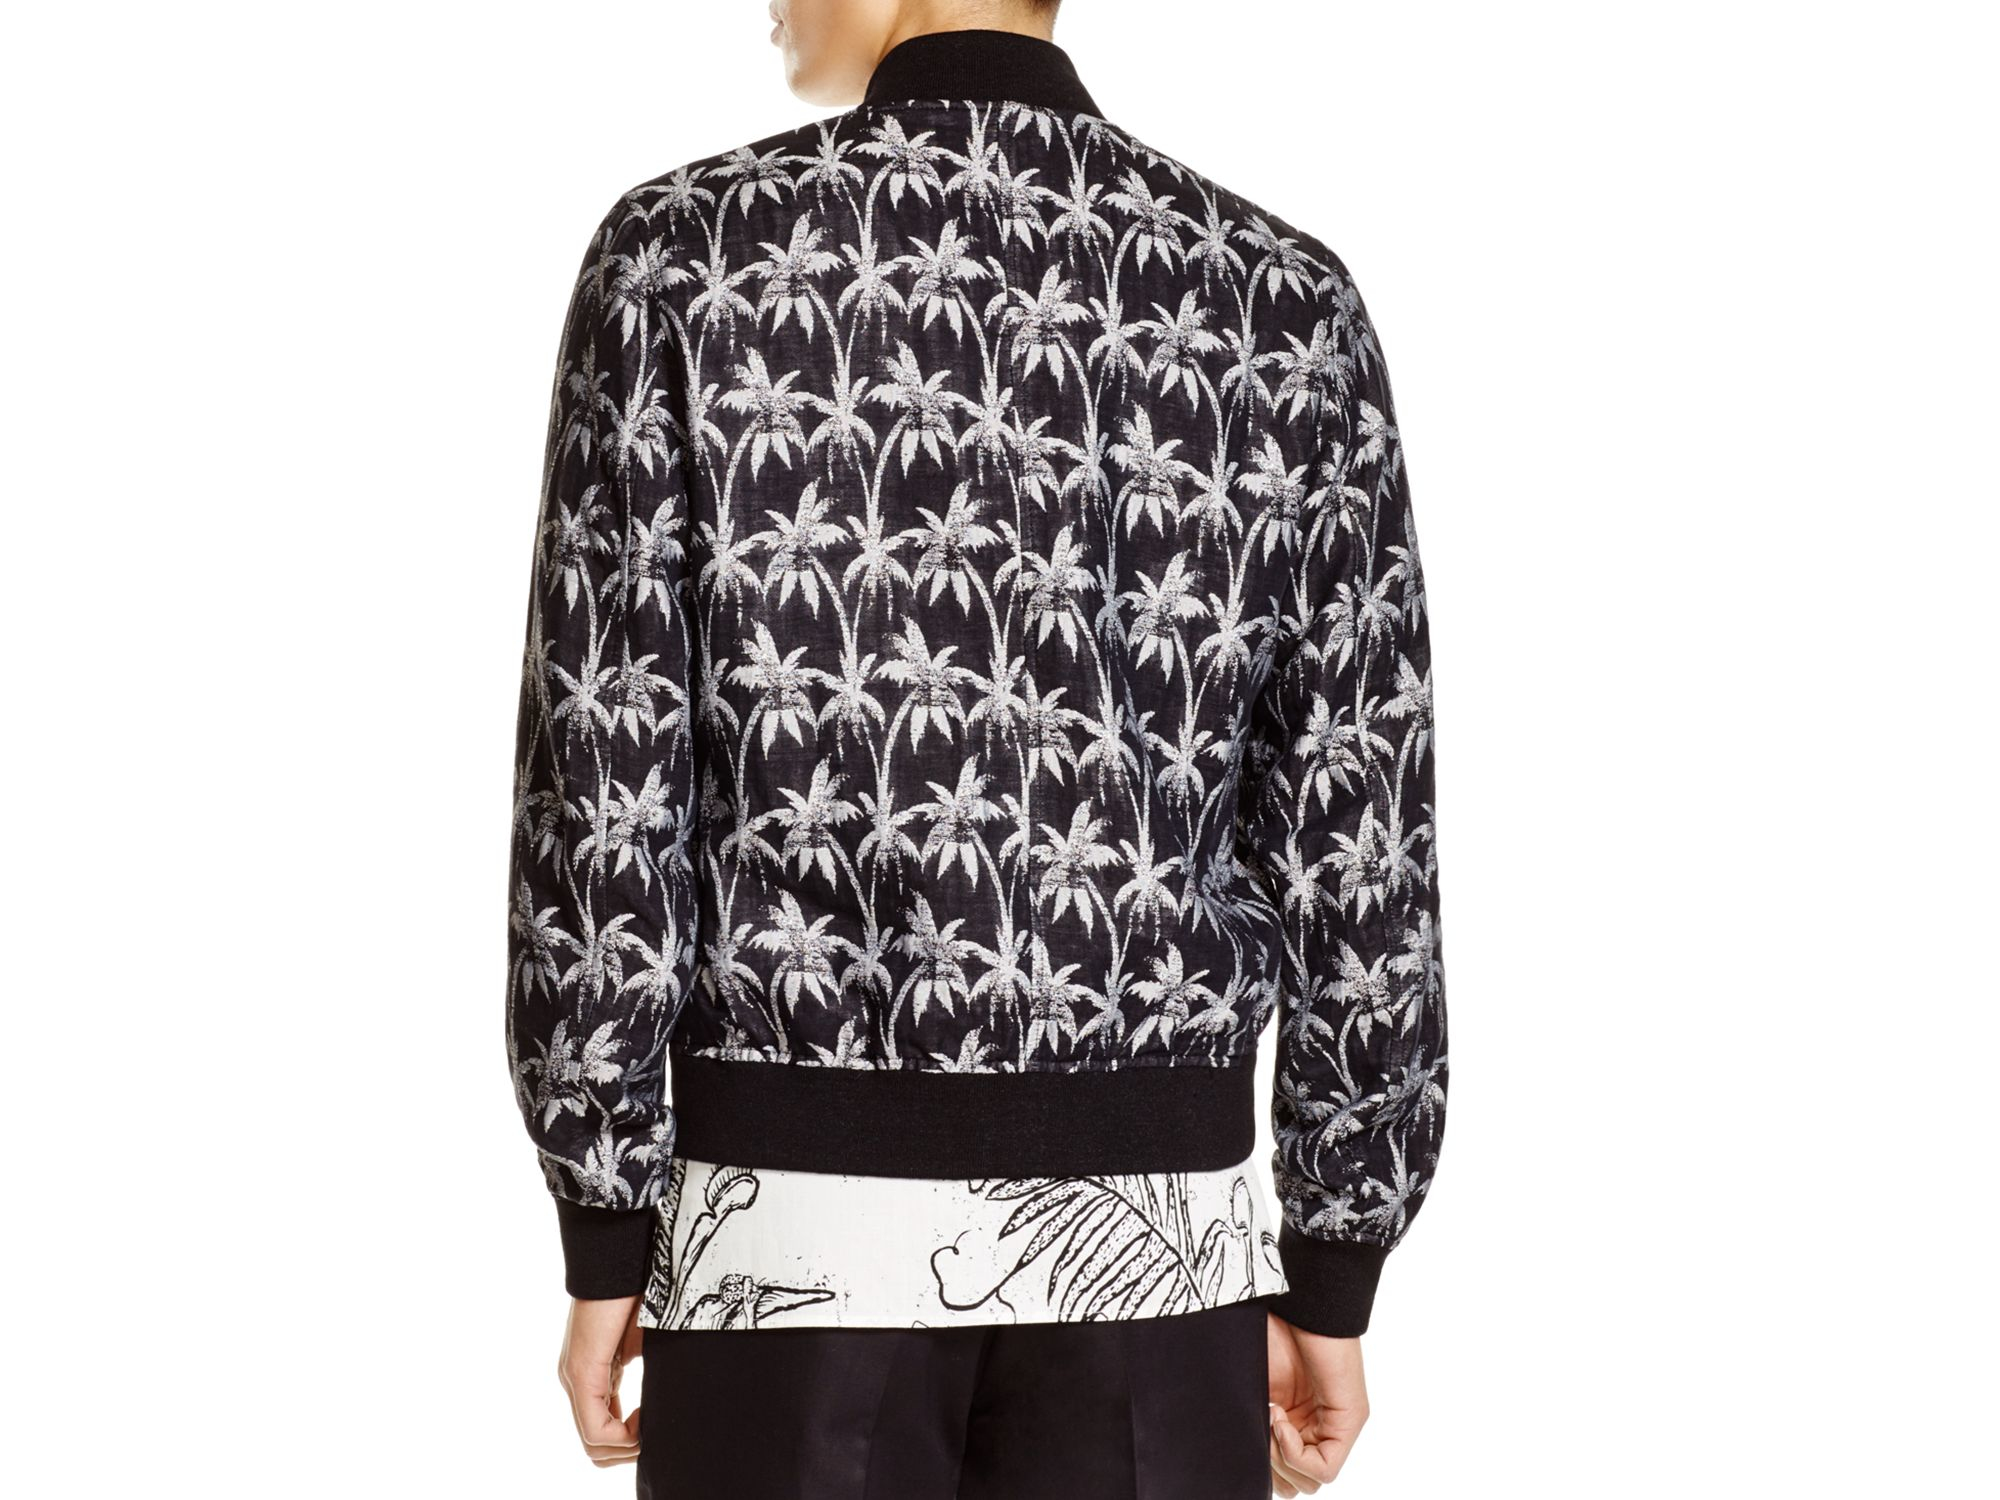 3c8a1f0d25185 Lyst - PS by Paul Smith Palm Print Bomber Jacket in Black for Men